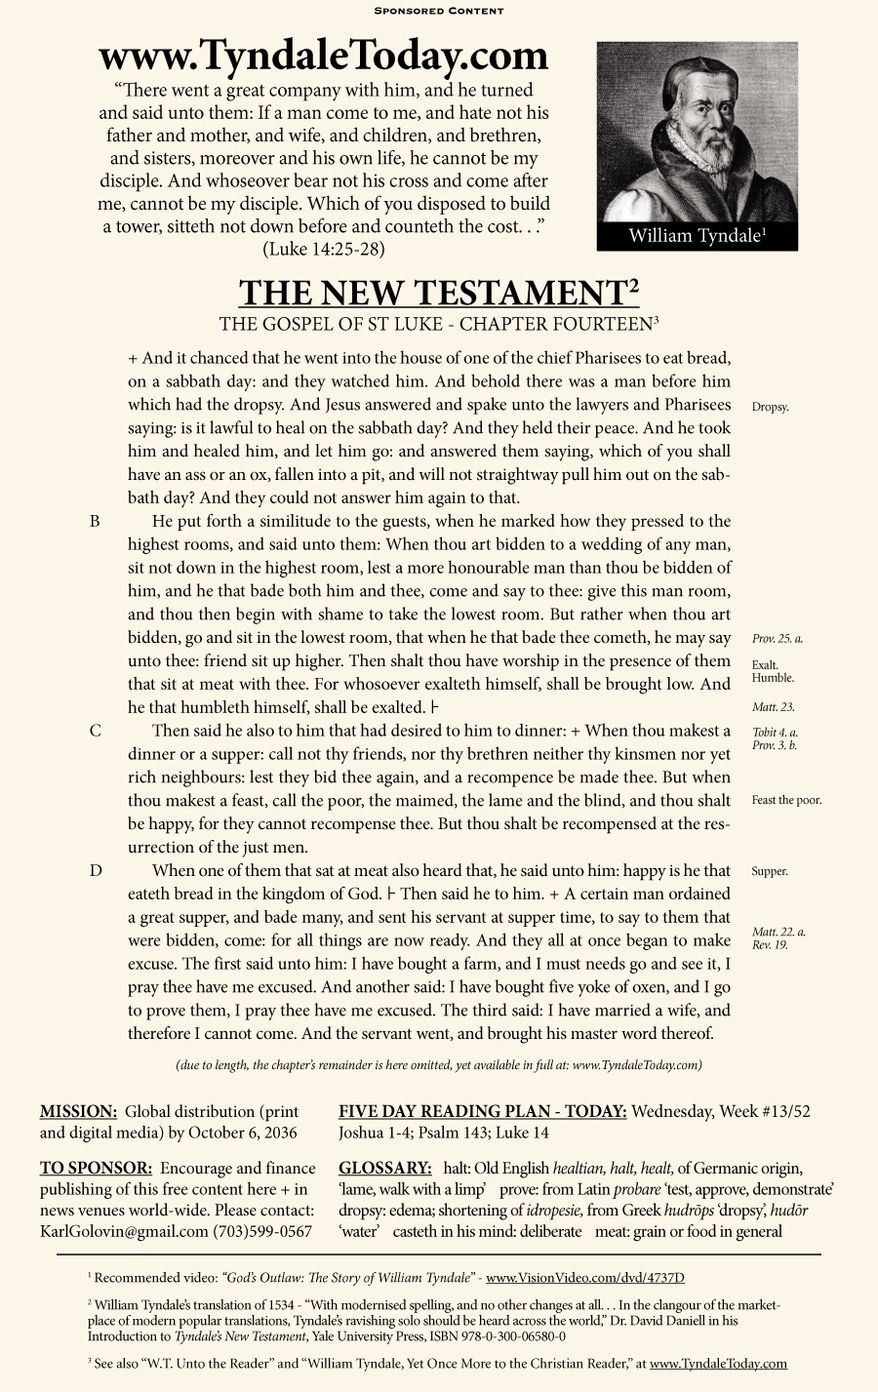 A daily reading of William Tyndale's 1534 translation of The New Testament from Tyndale Today. (Sponsored content March 29, 2017 in The Washington Times)